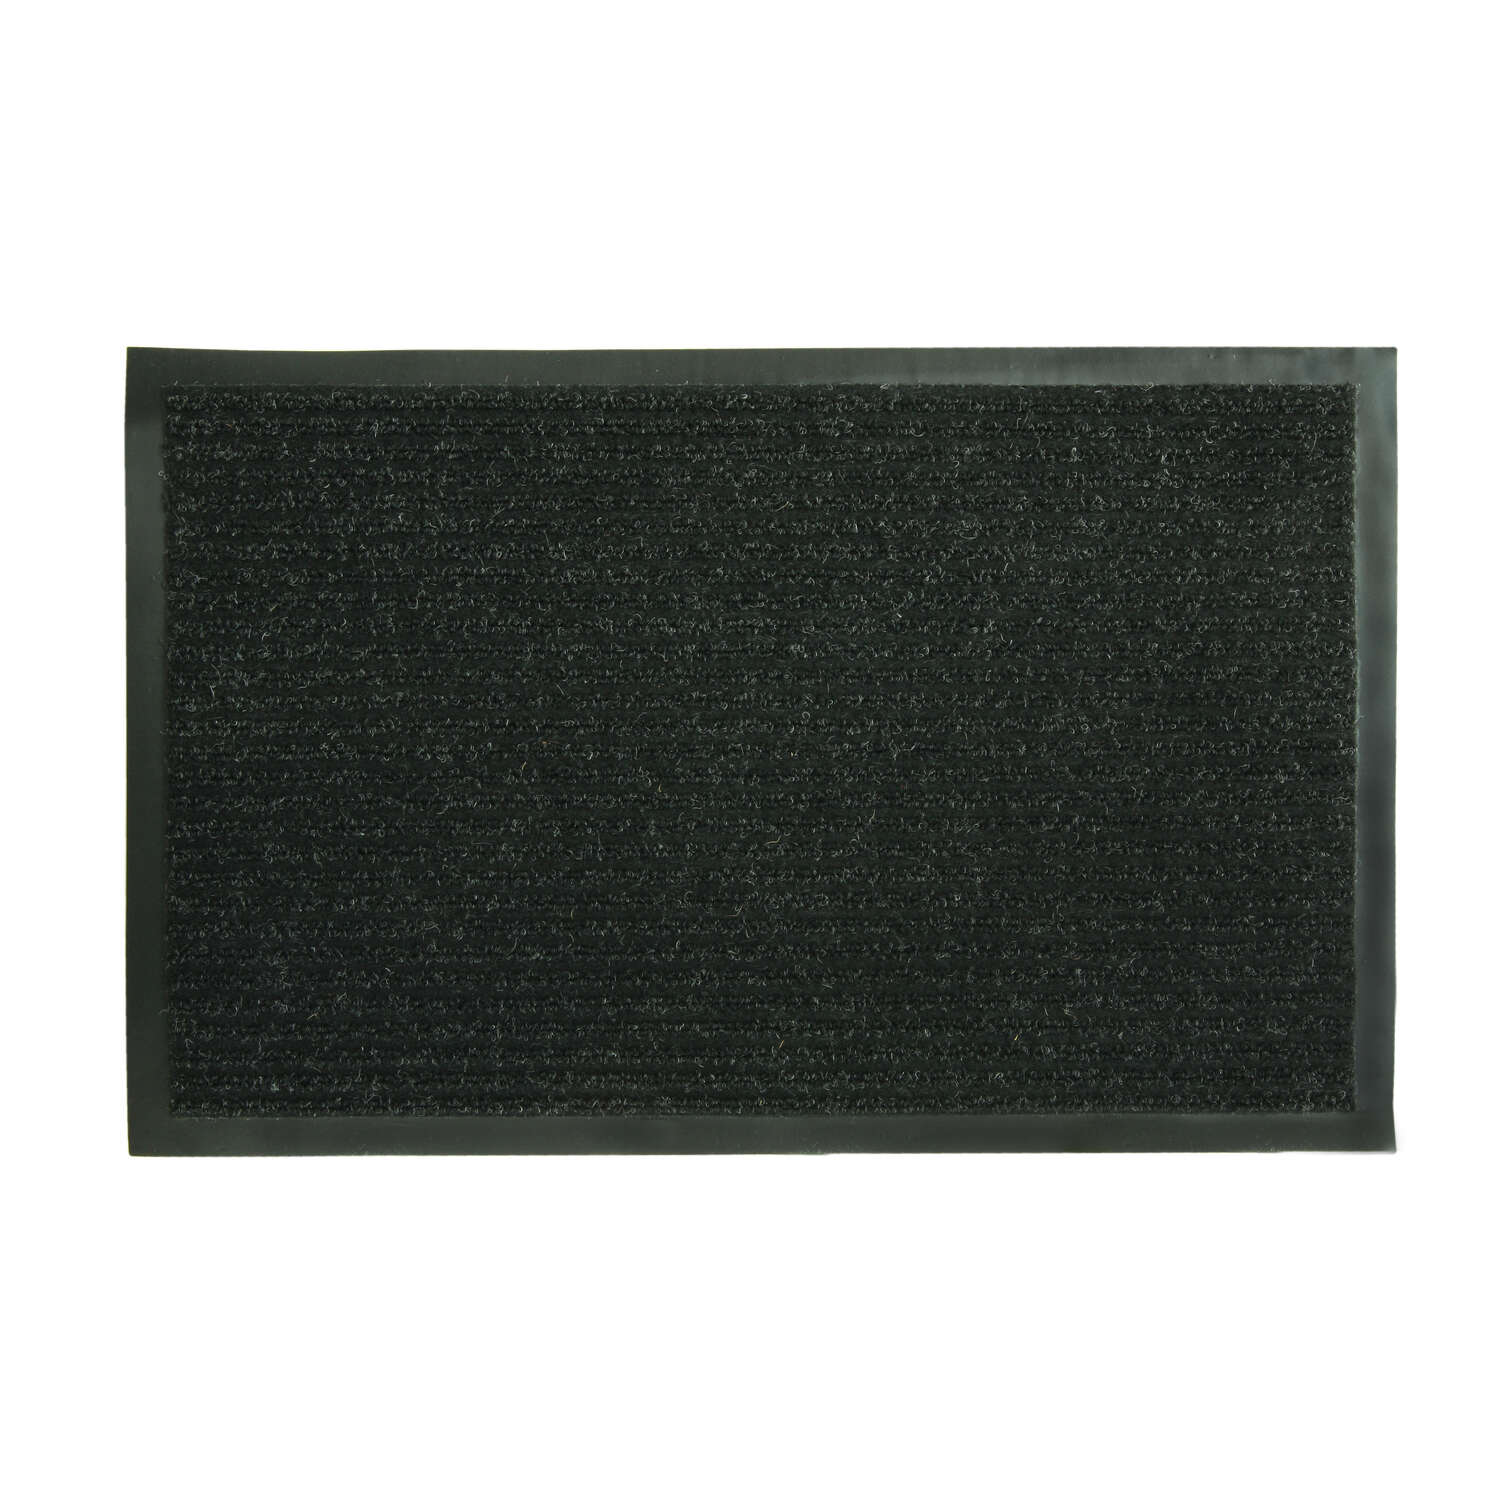 Sports Licensing Solutions  Fanmats  Ribbed  Black  Polypropylene/Vinyl  Nonslip Utility Mat  28 in.